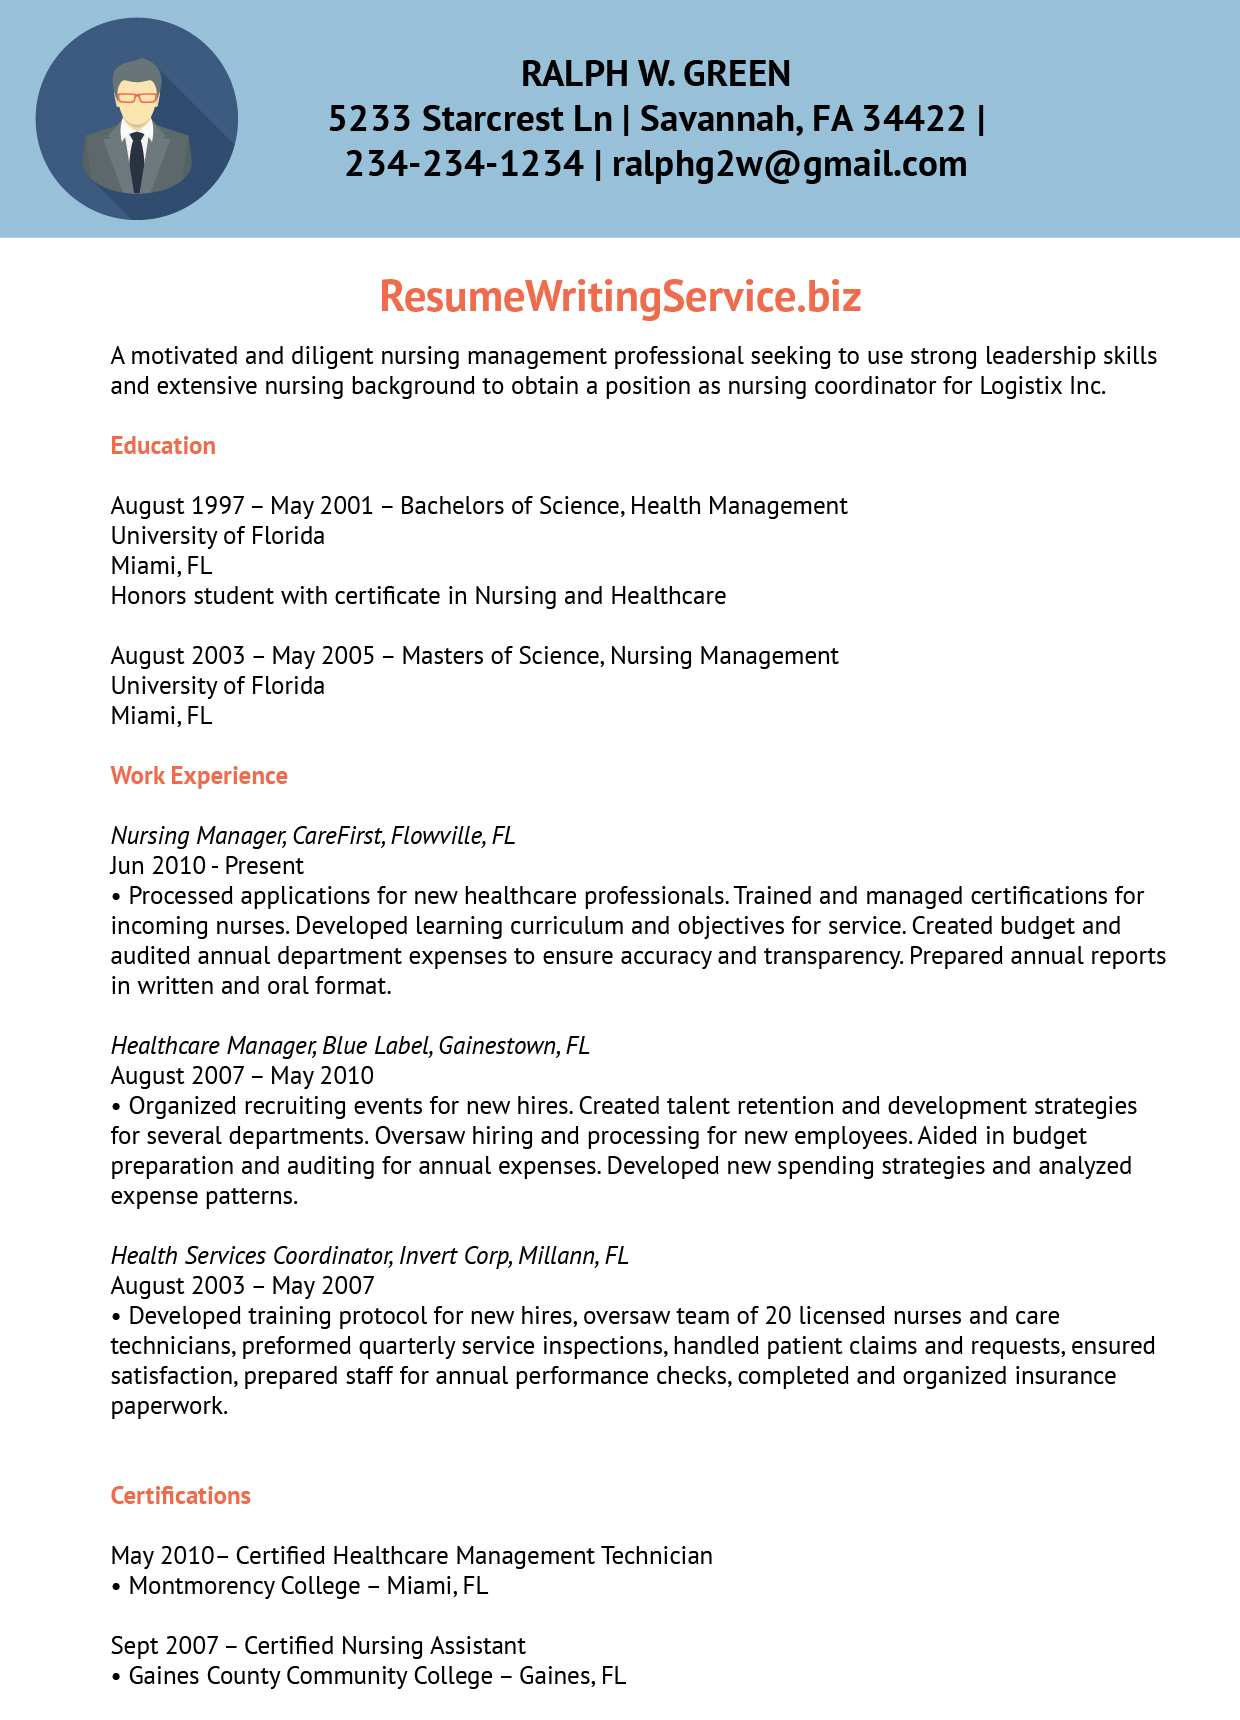 professional resume writing service for nurses See who you know at nursing resumes, leverage your professional network,  and get  welcome to nursing resumes, the home of dedicated resume writers,   nursing resumes services are backed by a 30-day revision guarantee on all.